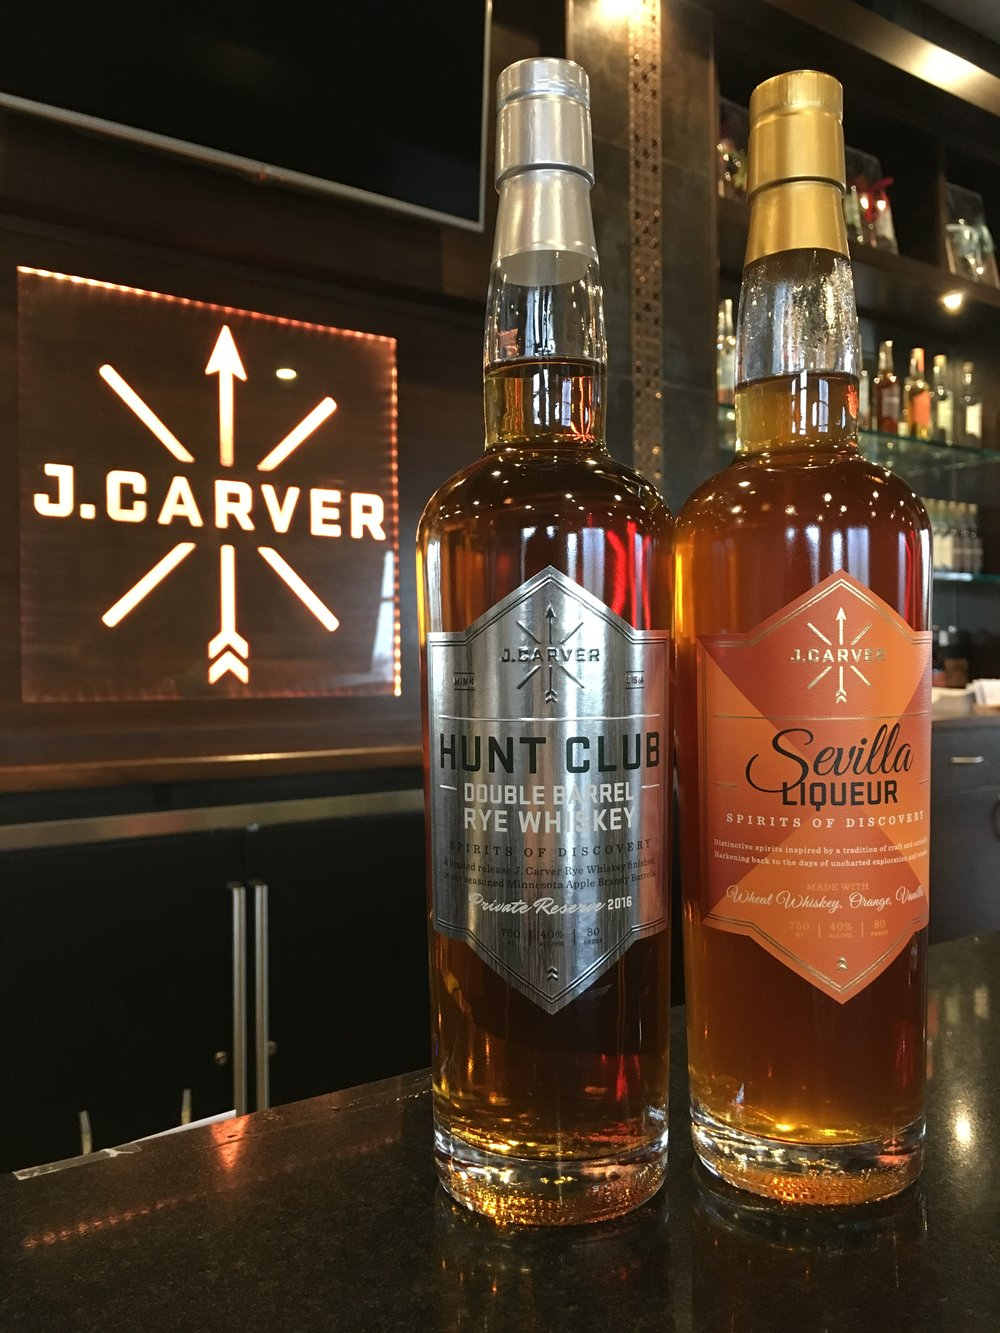 J. Carver Hunt Club Double Barrel Rye and Sevilla Liqueur